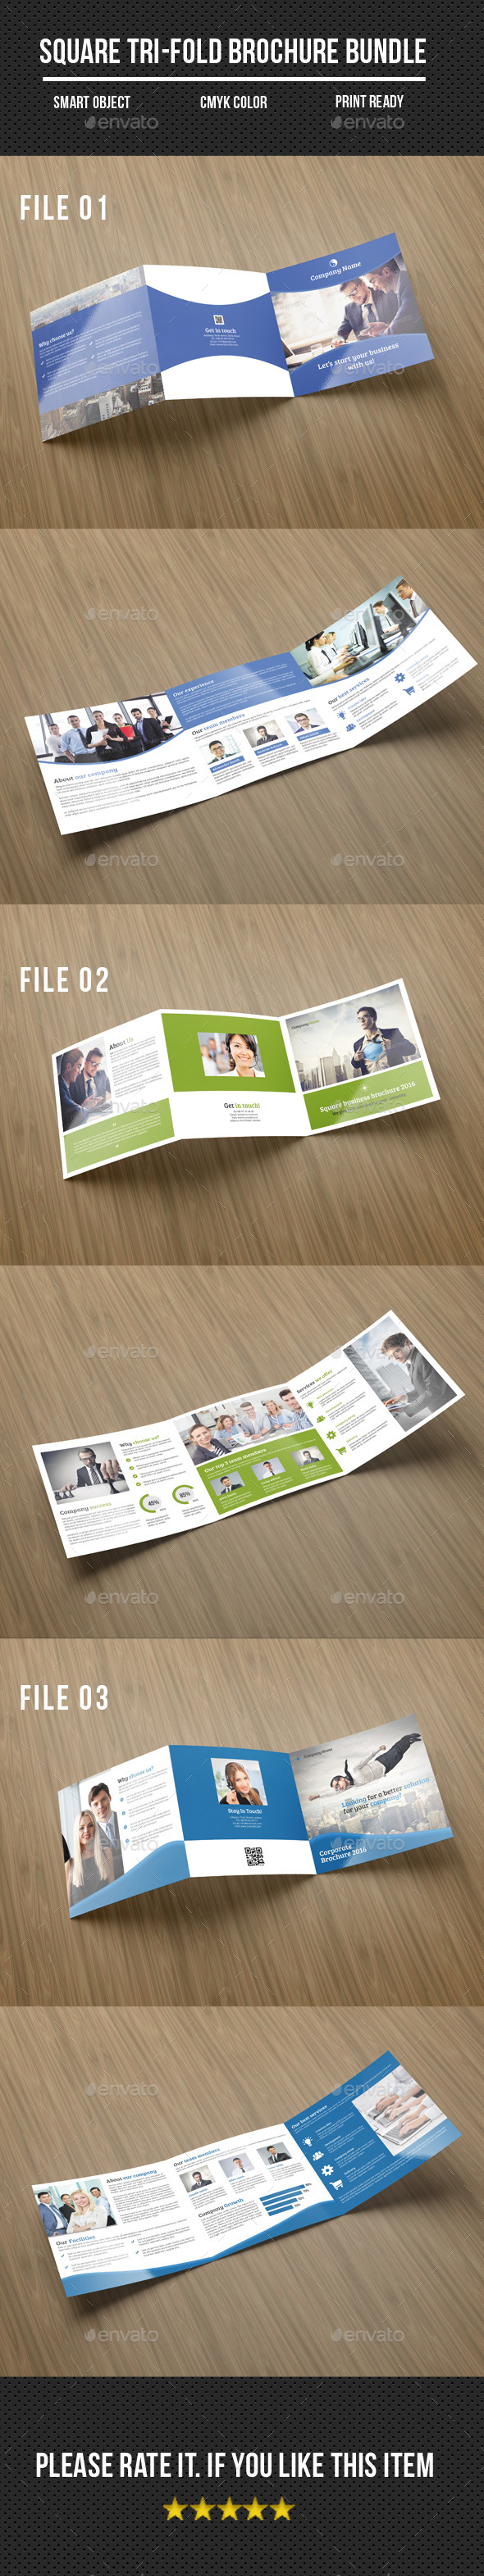 Square Tri-Fold Corporate Brochure Bundle - Corporate Brochures